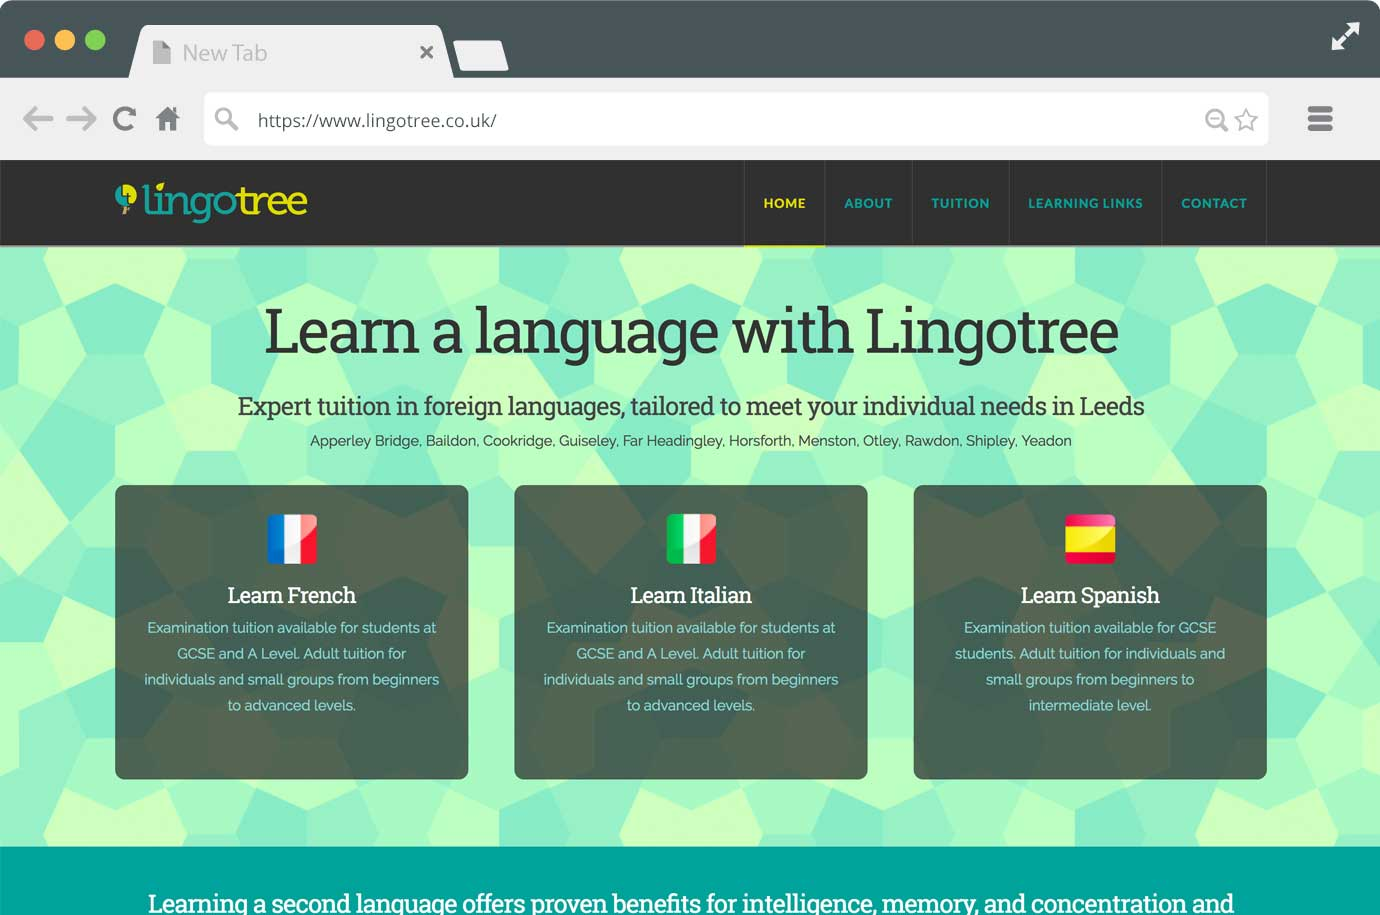 Lingotree website